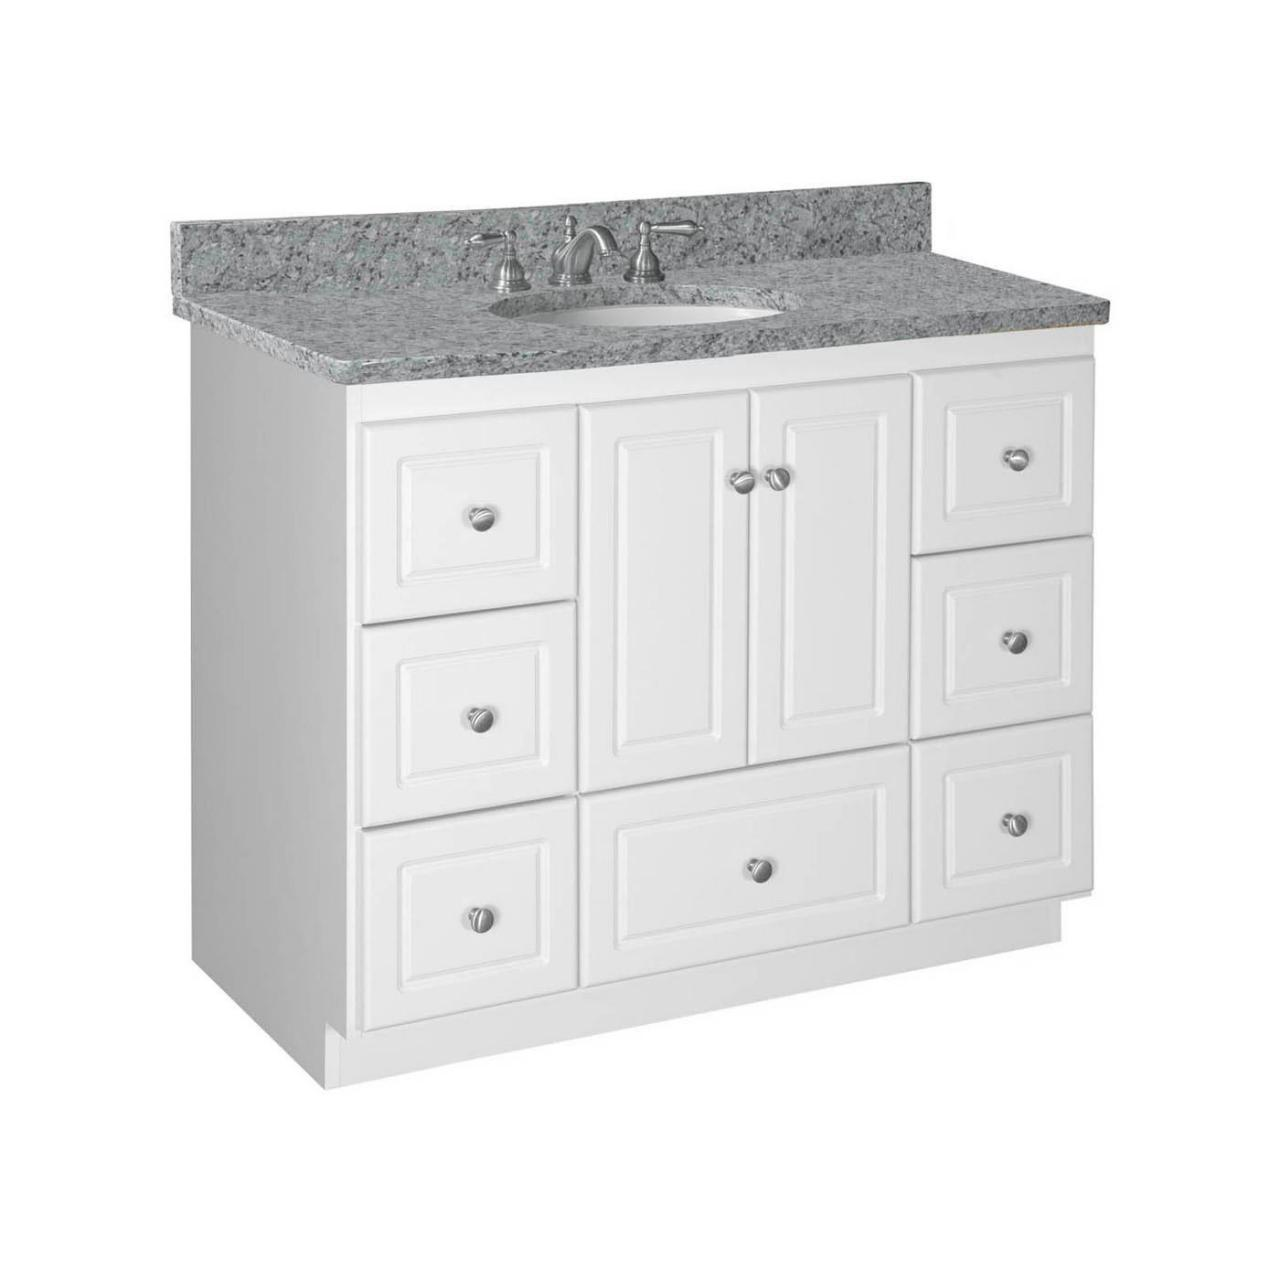 Quality bathroom vanities made in usa for sale